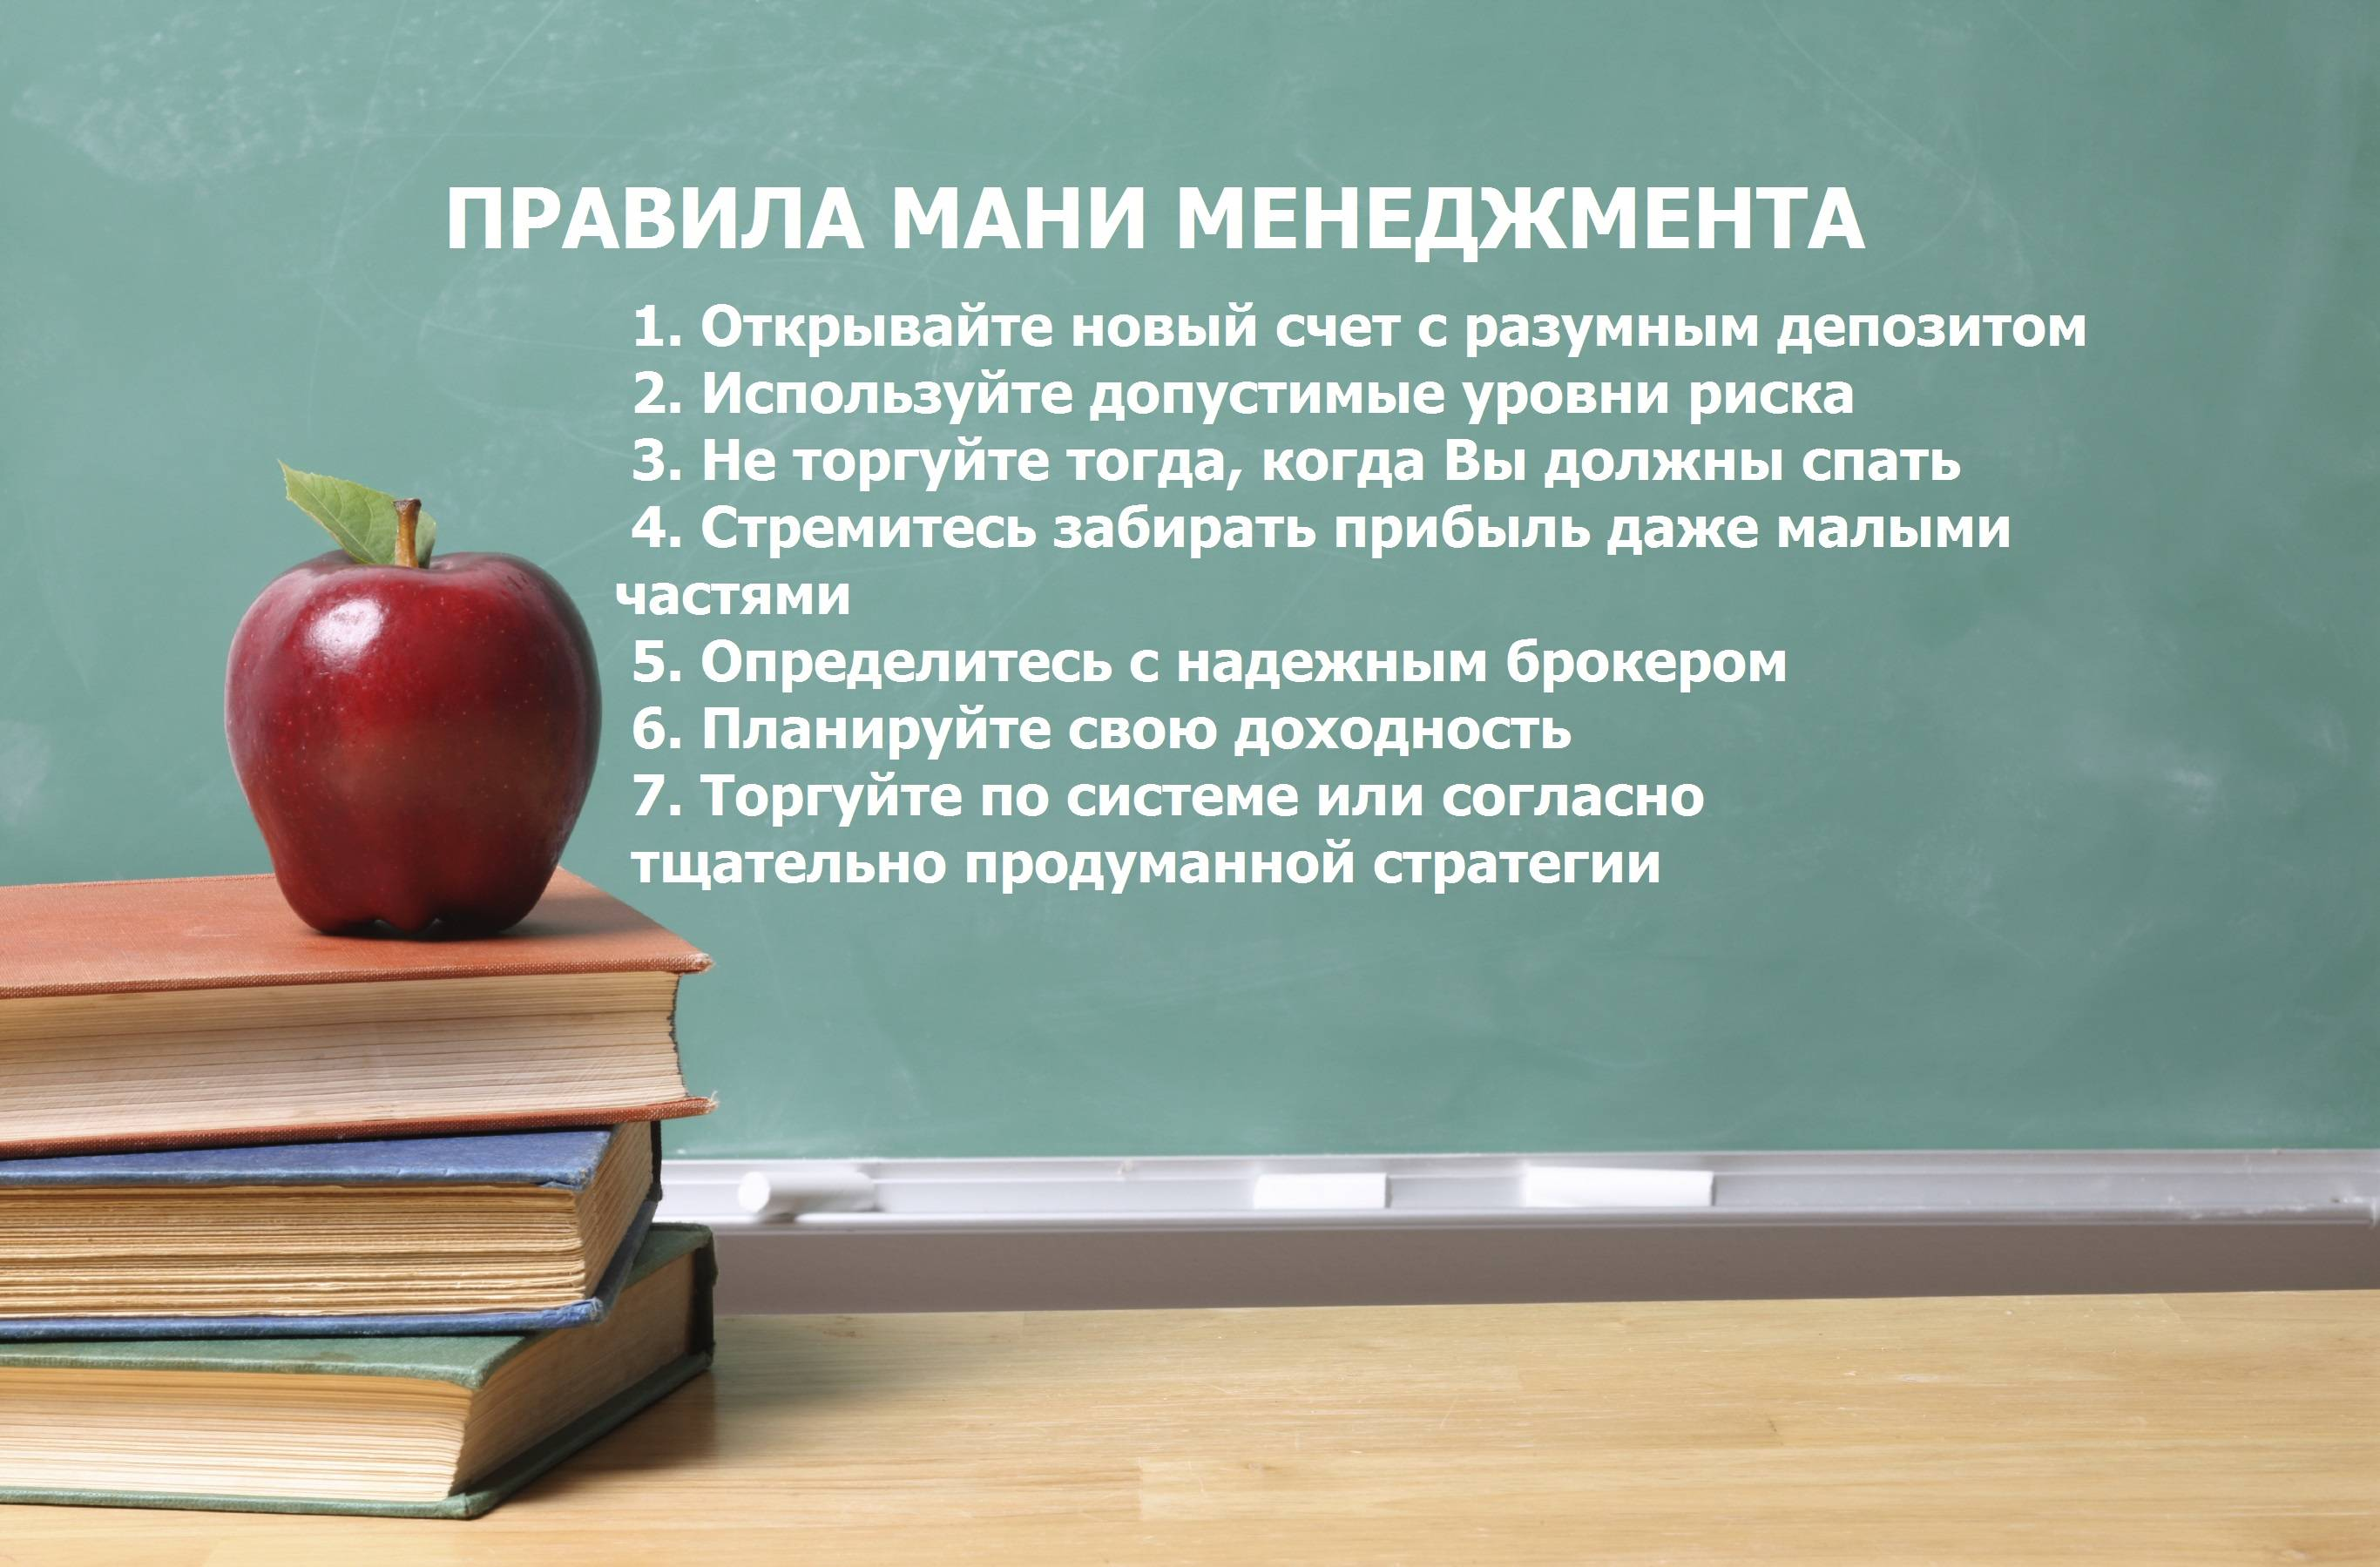 money management essay Free essay: money is something that encases our whole lives money management is an important skill that affects all aspects of our lives and help is available for those who lack this knowledge.